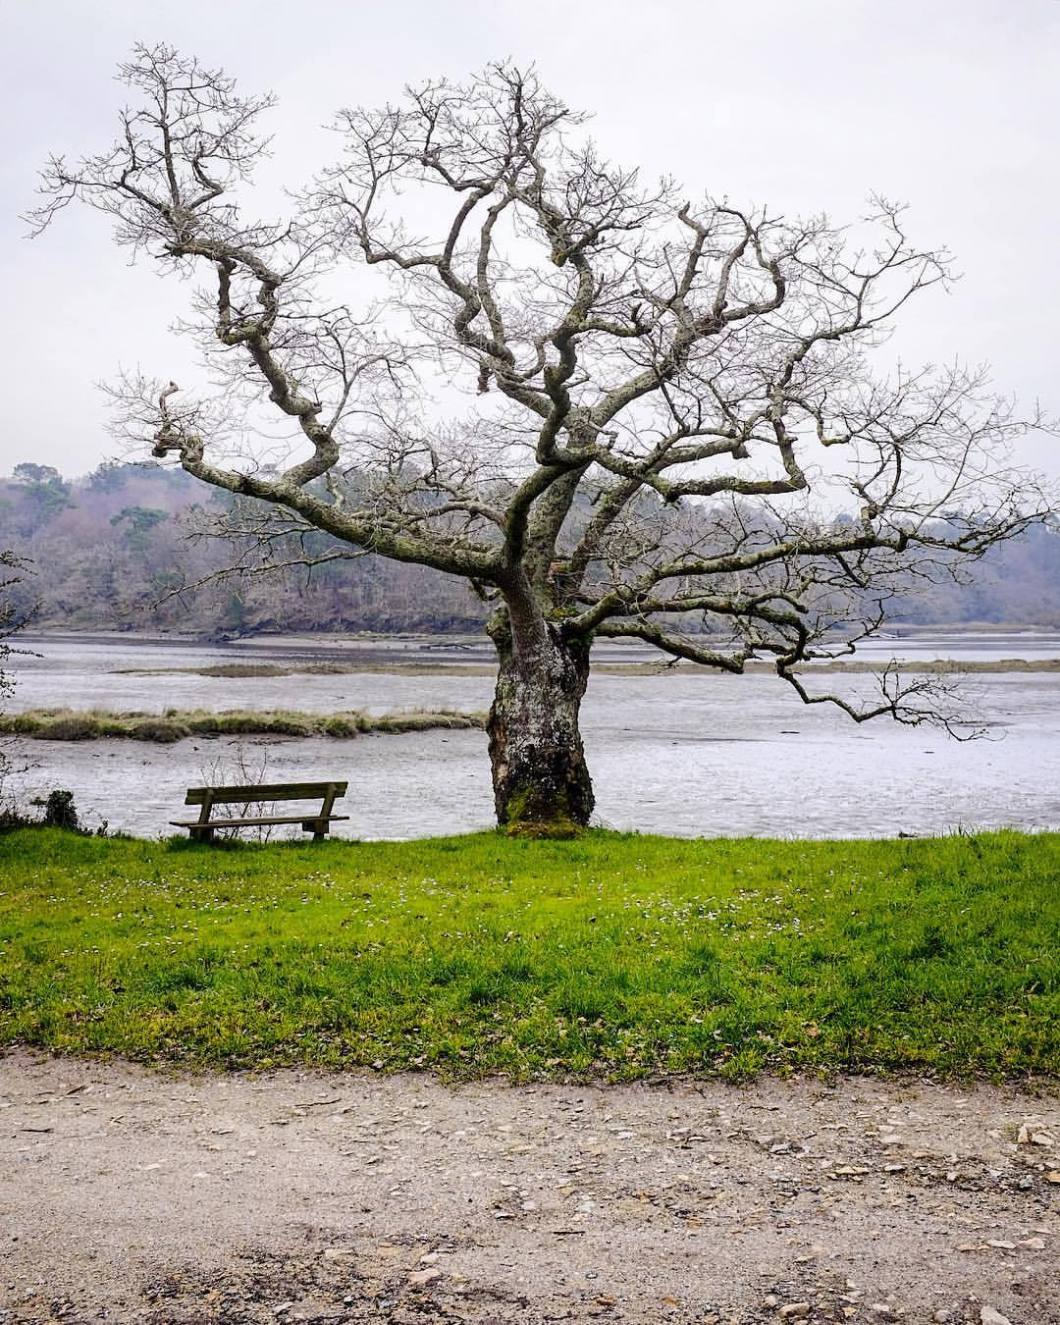 Old Tree, Bretagne 2018..#photooftheday #onephotoaday #photography #fujix100t #nature #naturephotography #landscape #landscapephotography #france #bretagne #britanny #redene #tree #baum #forest #wald #bench #park #ocean #atlantic #sea #lonesome #romantic (hier: Quimperlé)